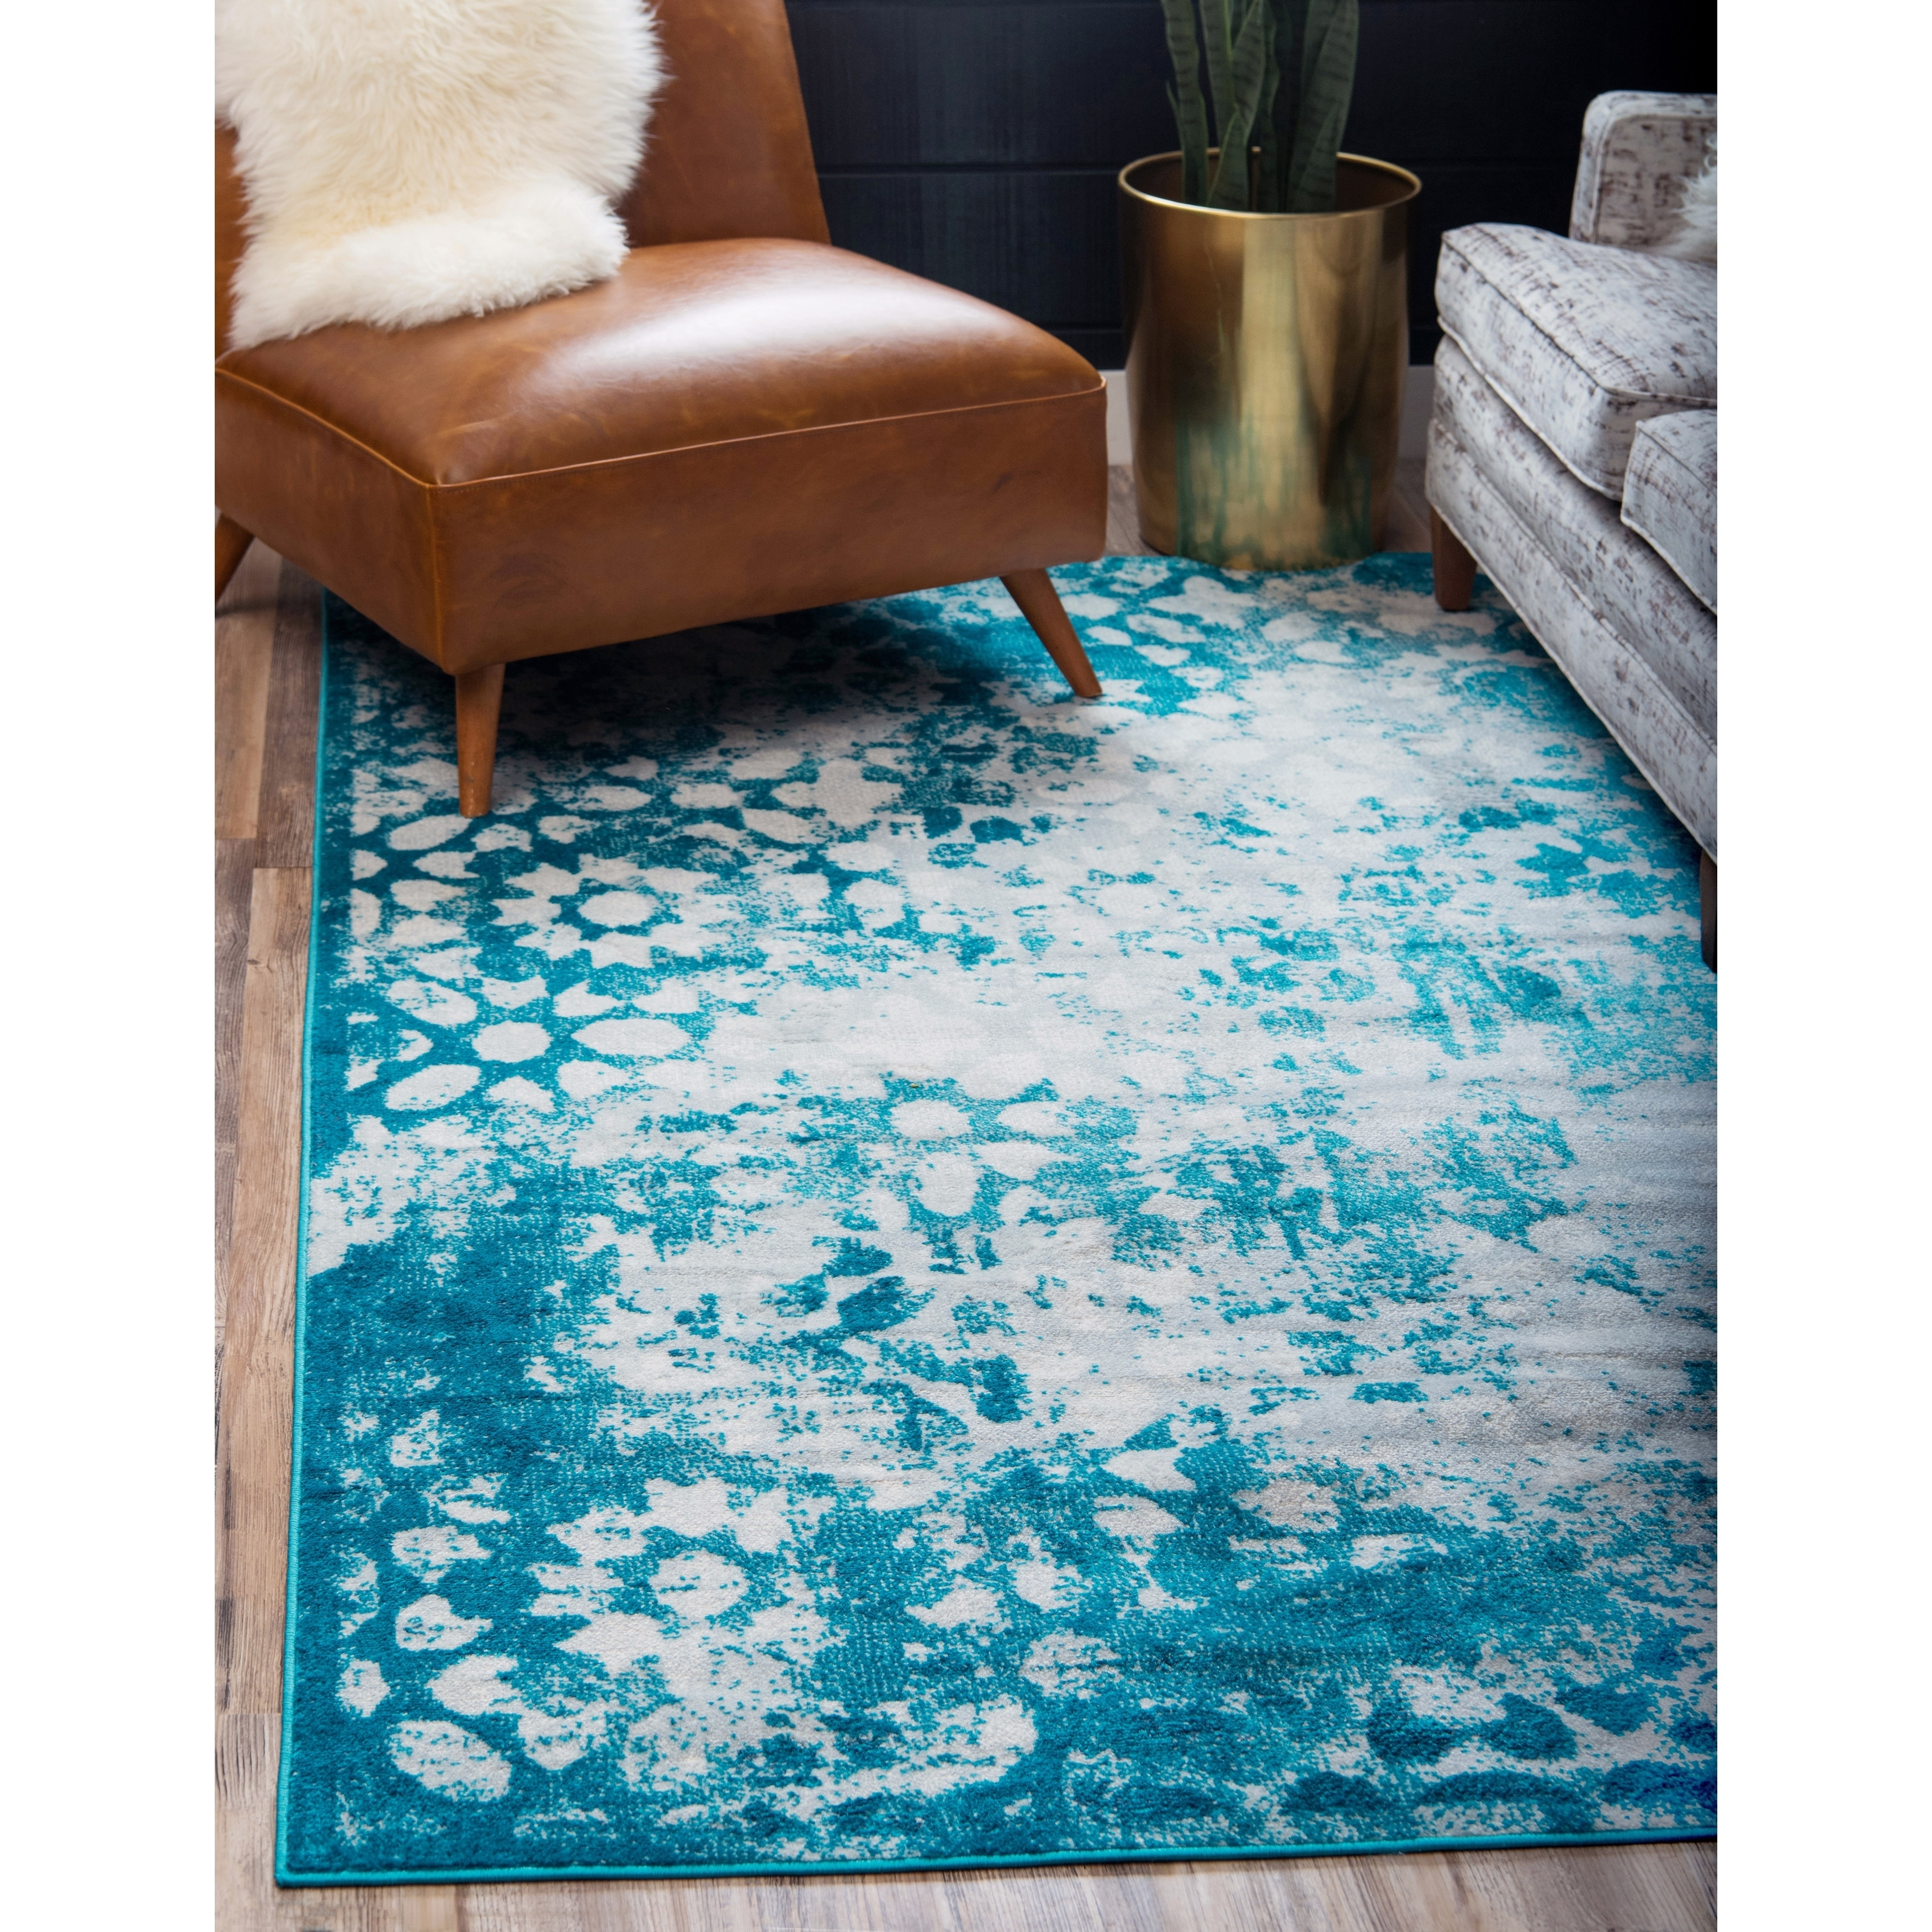 Buy Teal 5x8 - 6x9 Rugs Sale Online at Overstock.com | Our Best Area ...